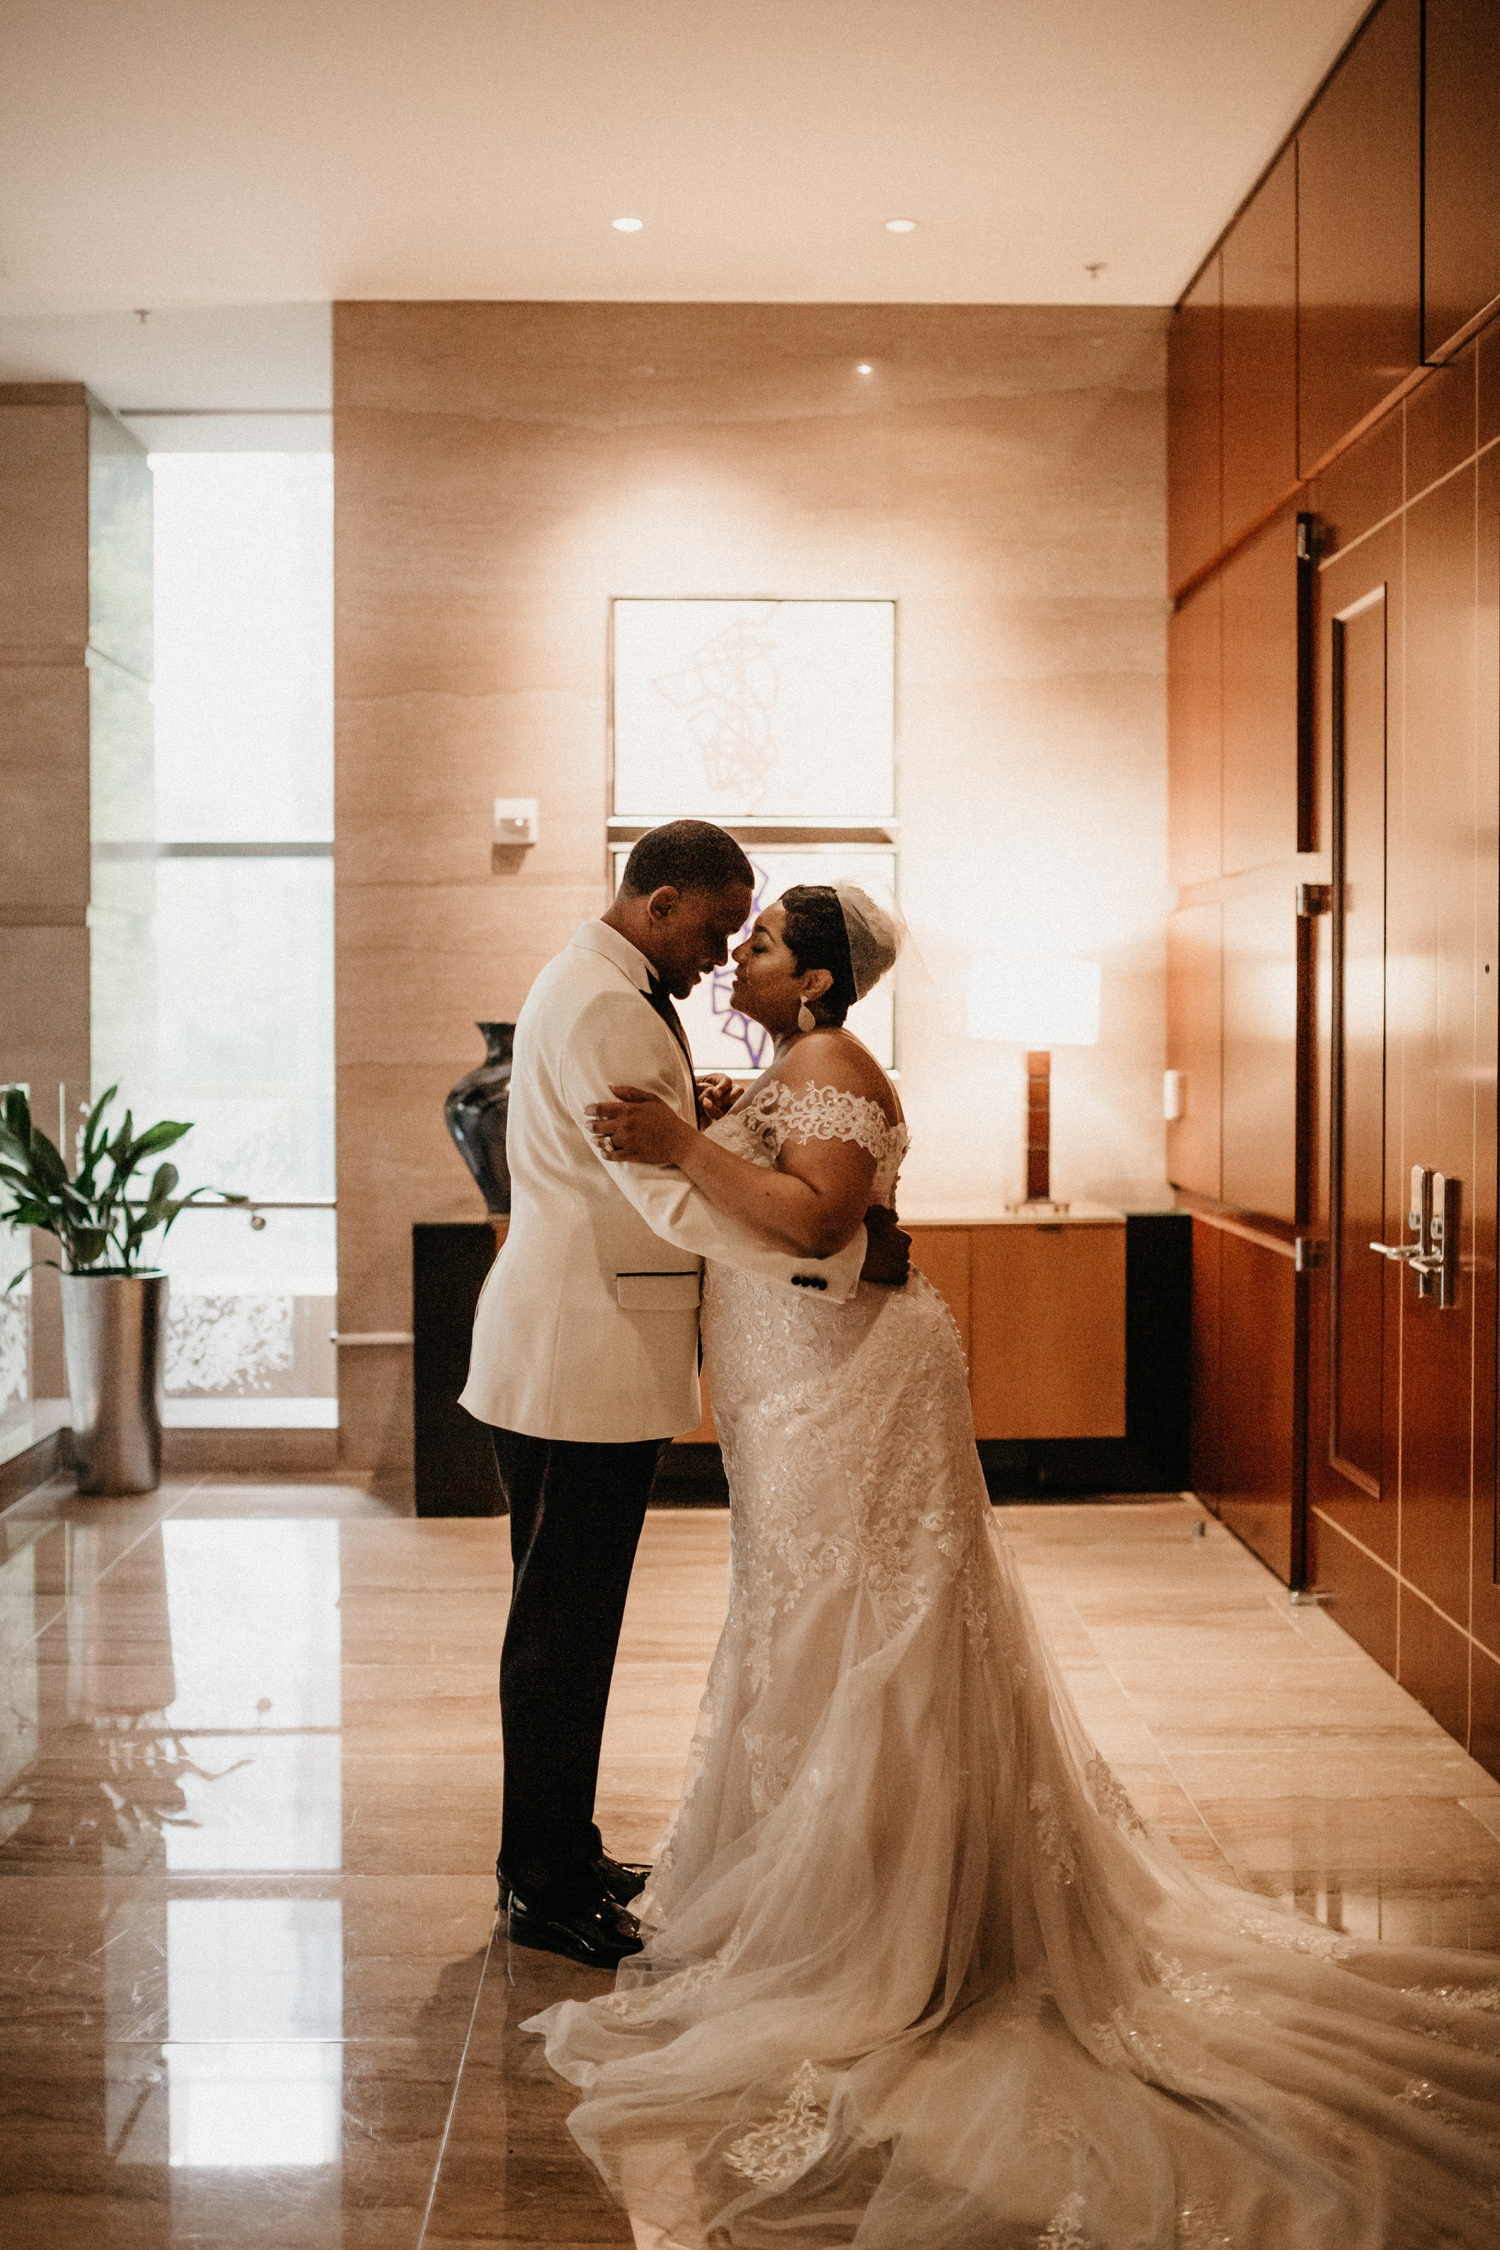 46_Ritz-carlton-wedding_charlotteNC_charlotteweddingphotographer.jpg